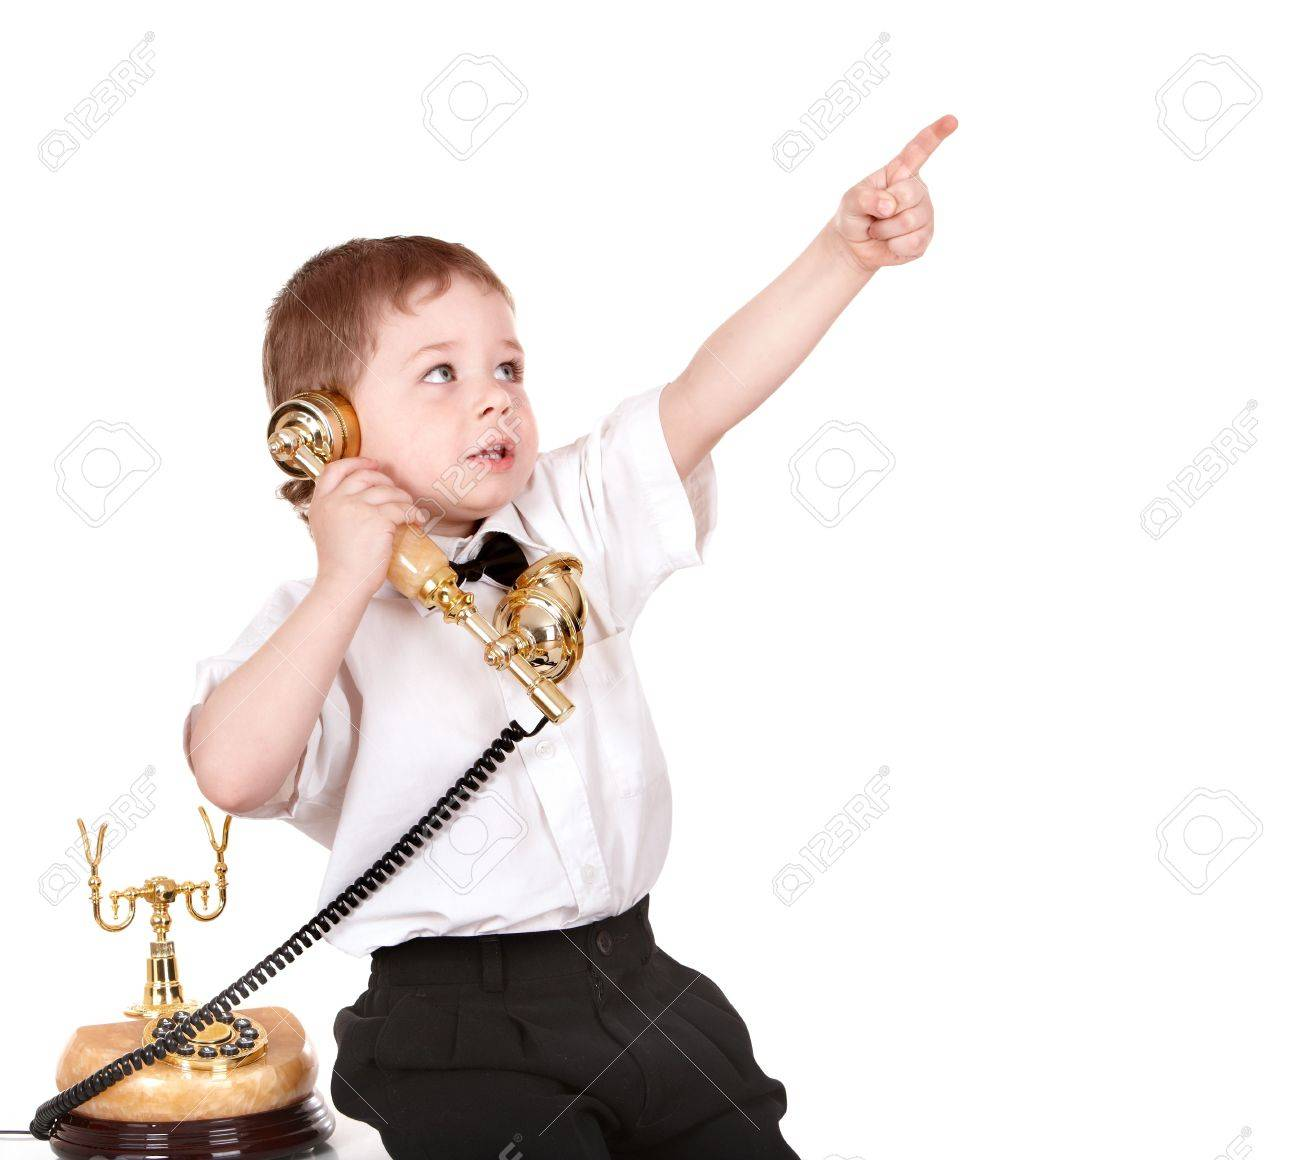 Boy in business suit with telephone point. Isolated. Stock Photo - 7778791